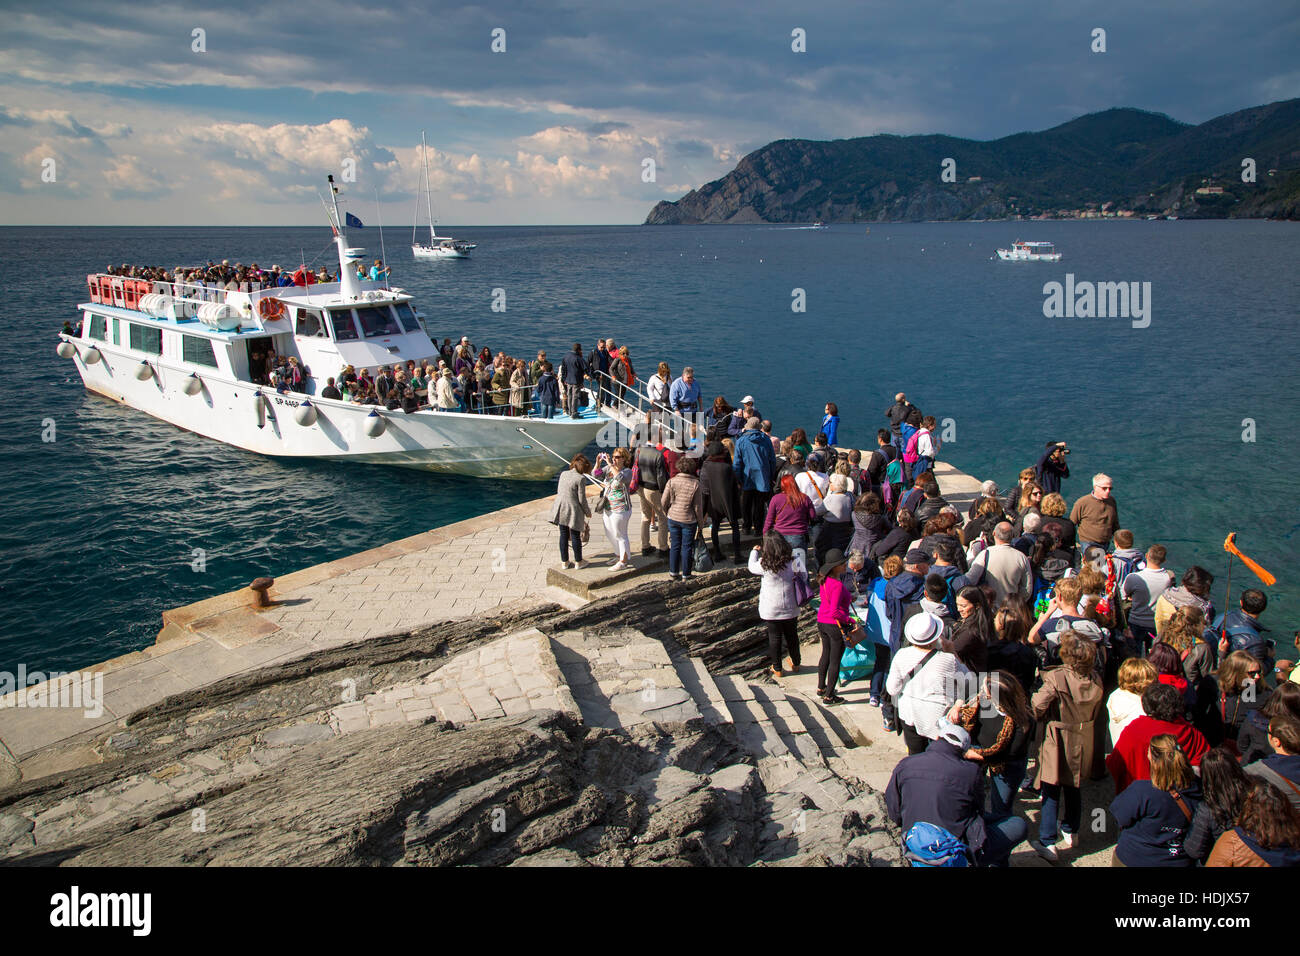 Tourists unloading from shuttle boat in Vernazza, Cinque Terre, Liguria, Italy - Stock Image